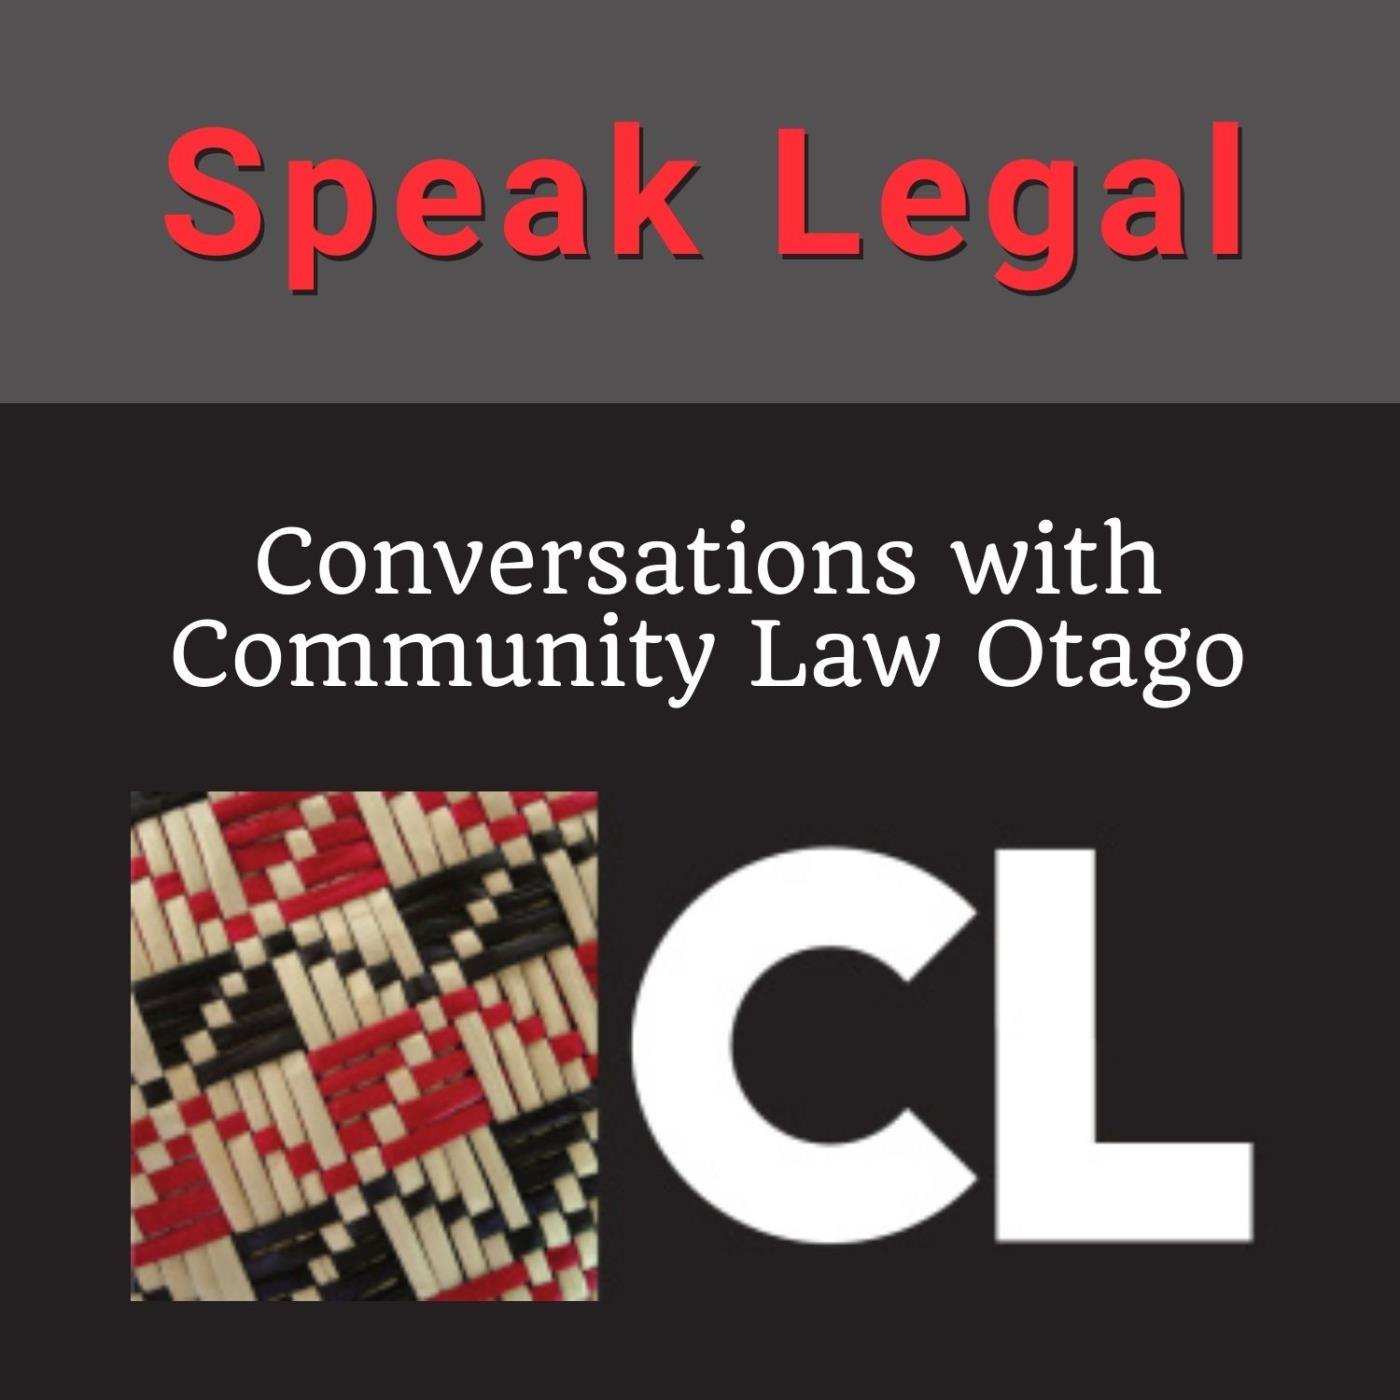 Speak Legal - Conversations with Community Law Otago - 06-05-2021 - Organ Donation - Georgia Woodley